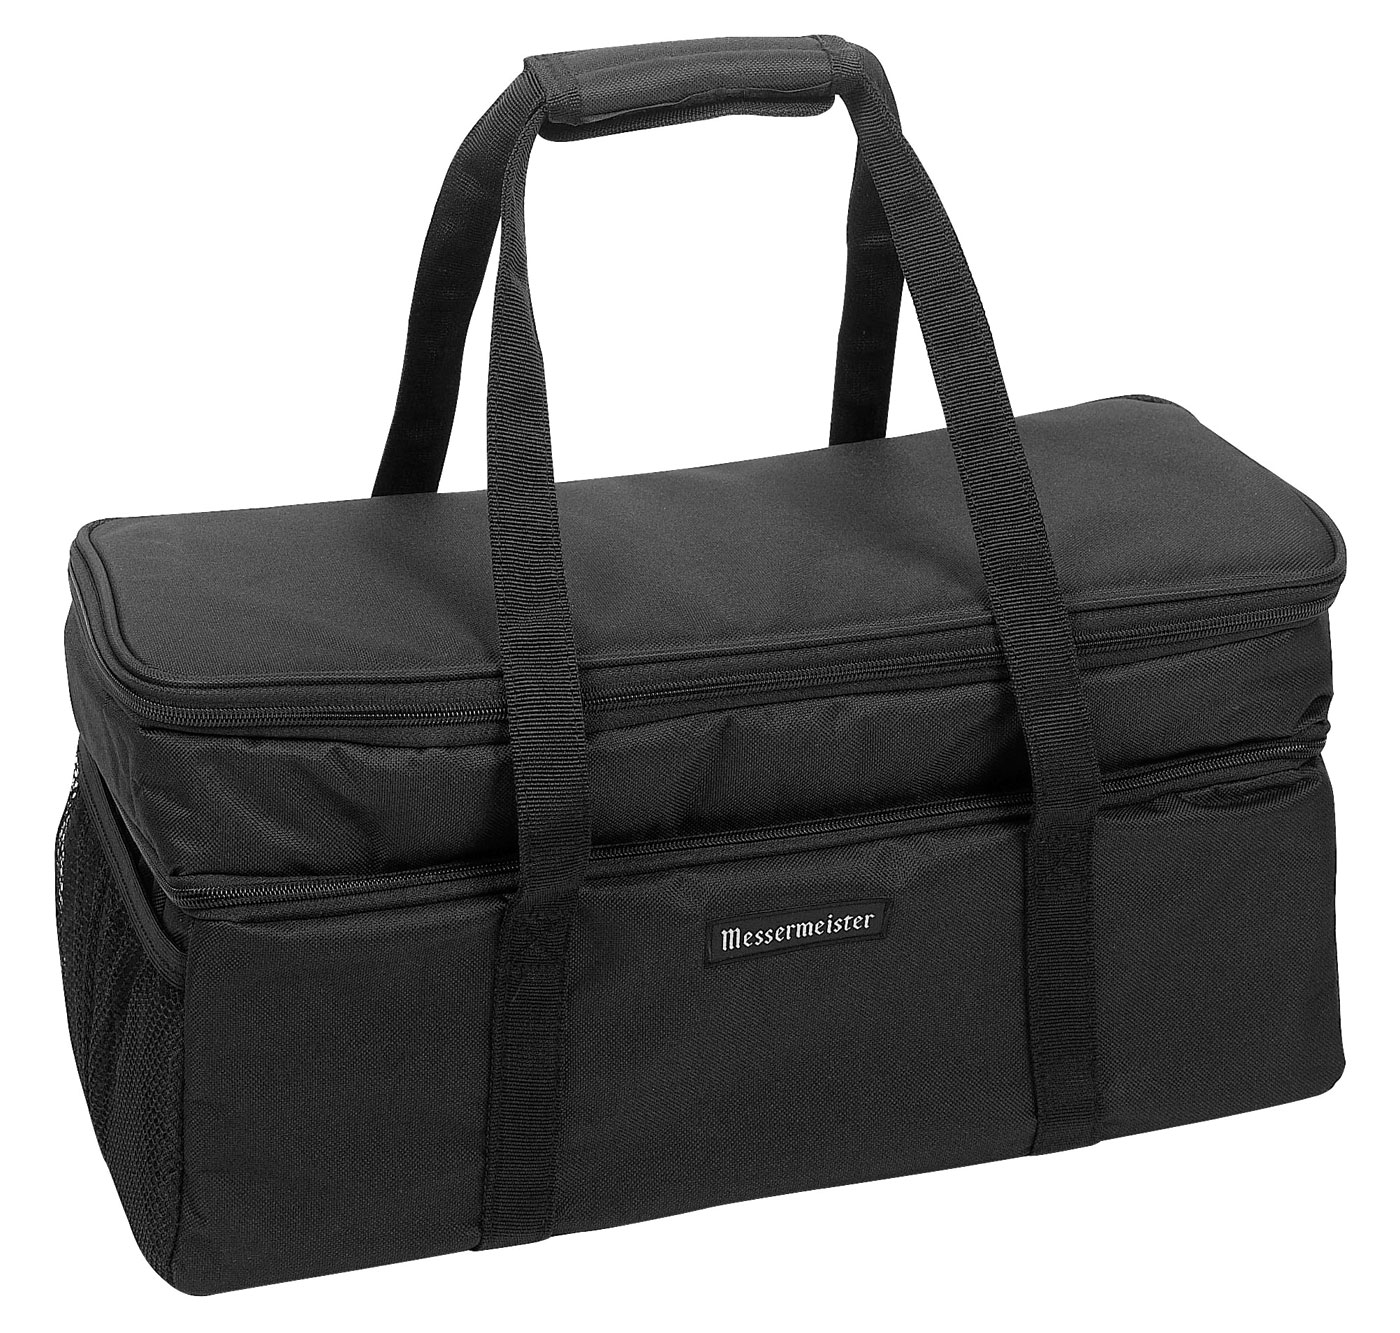 Messermeister Soft Sided Culinary Tool Box Cutlery And More